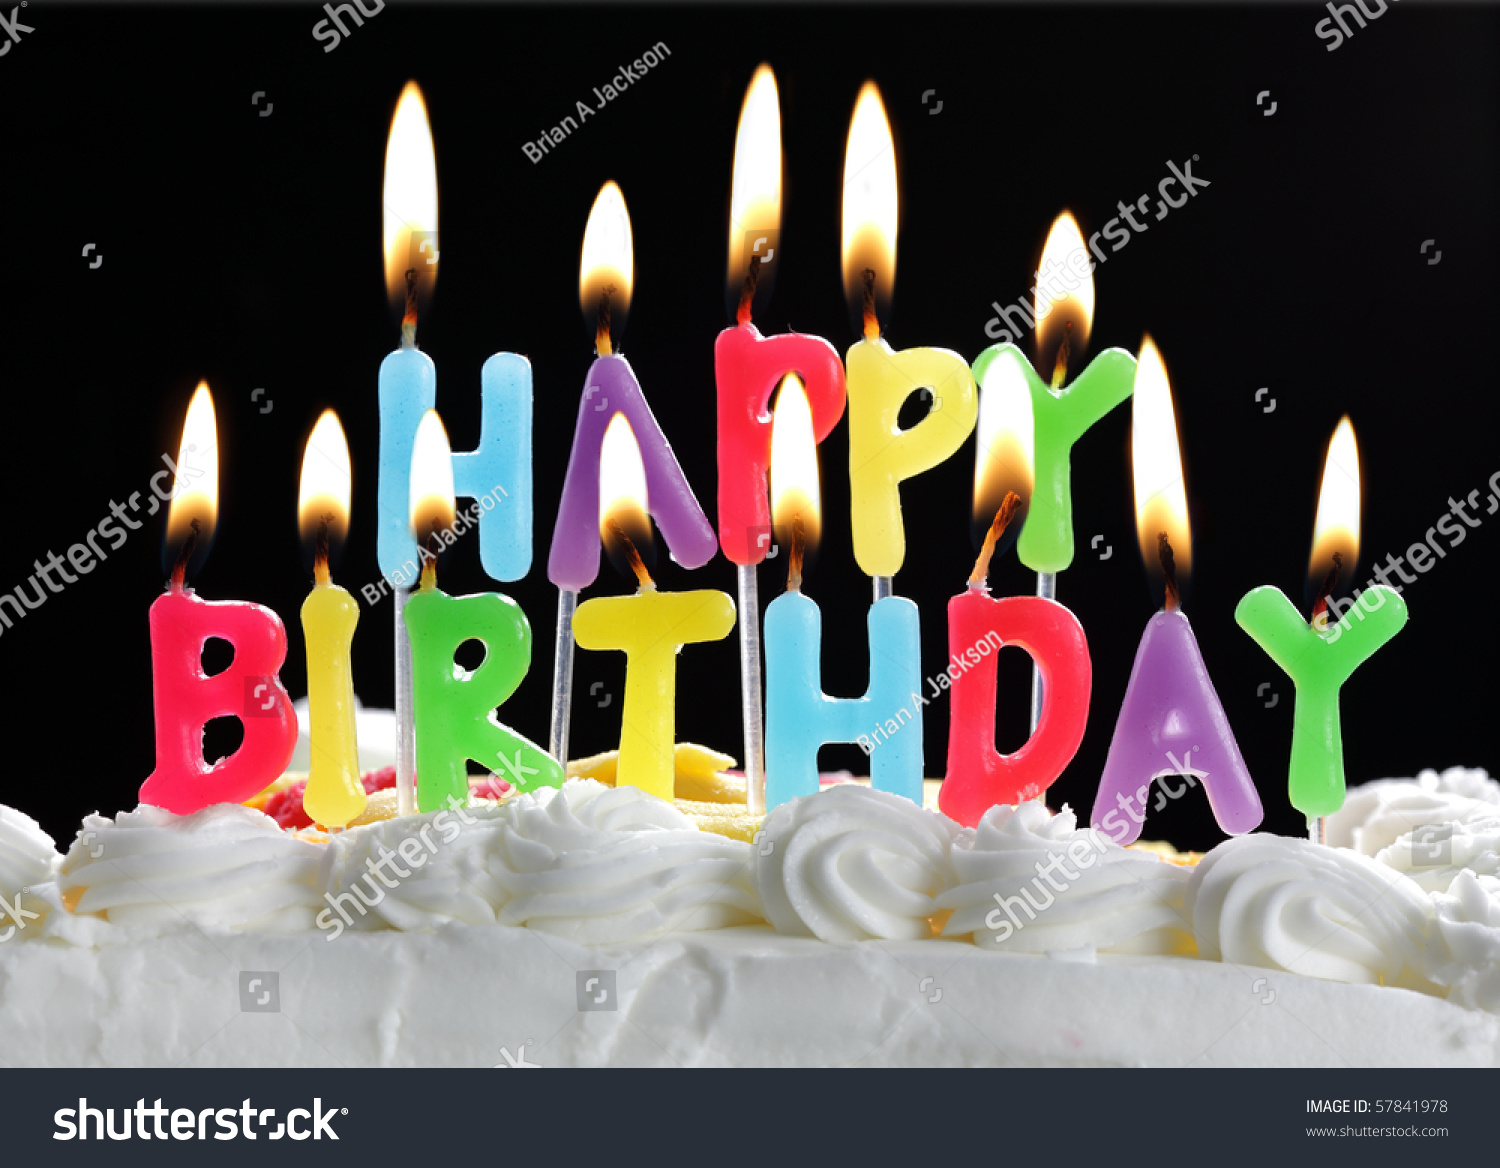 happy birthday cake with candles ; stock-photo-colorful-happy-birthday-candles-burning-on-a-cake-57841978